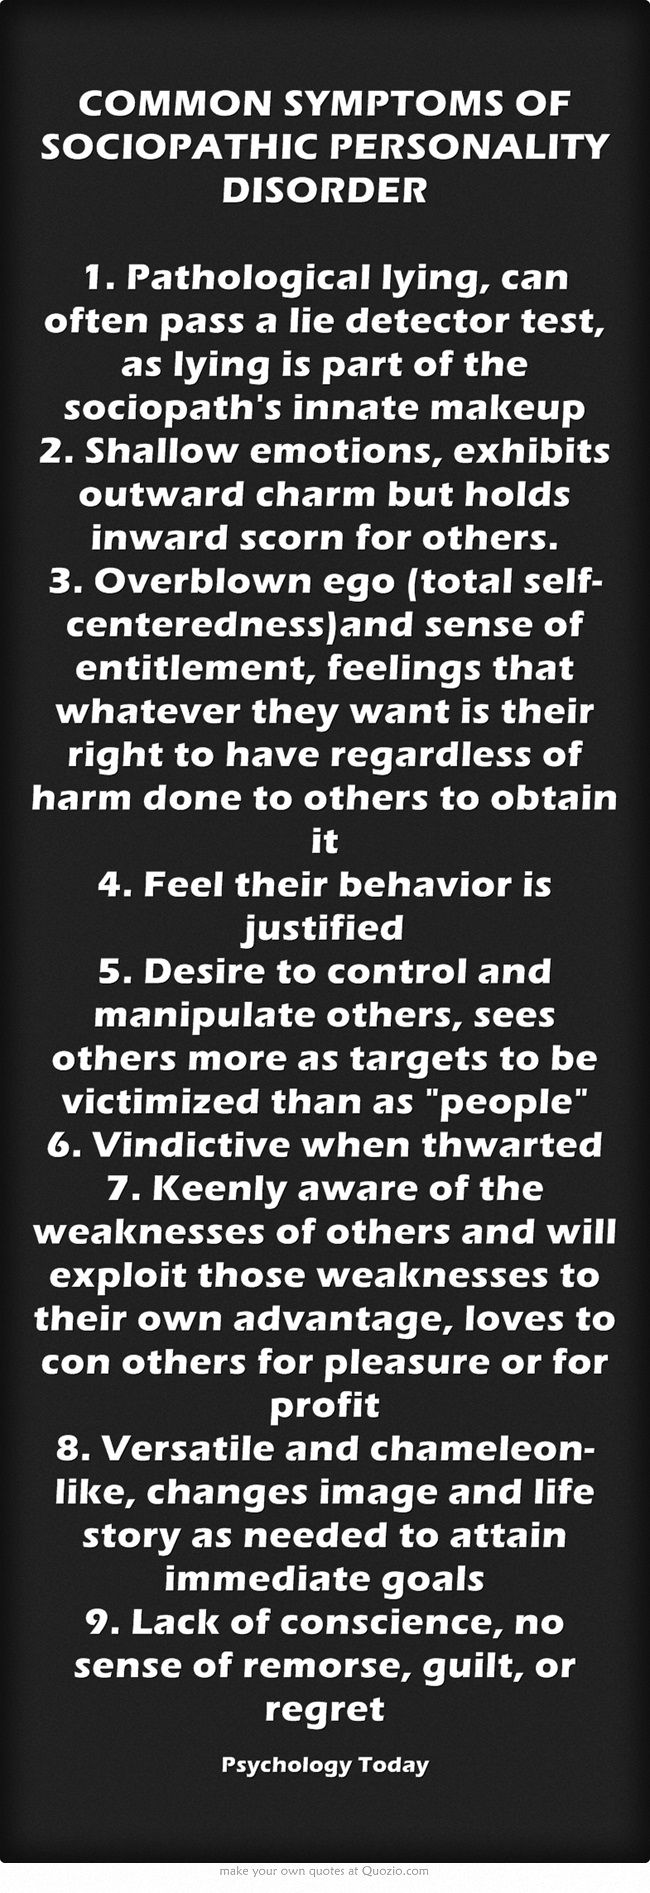 COMMON SYMPTOMS OF SOCIOPATHIC PERSONALITY DISORDER 1. Pathological lying, can often pass a lie detector test, as lying is part of the sociopath's innate makeup 2. Shallow emotions, exhibits outward charm but holds inward scorn for others. 3. Overblown ego (total self-centeredness)and sense of entitlement, feelings that whatever they want is their right to have regardless of harm done to others to obtain it 4. Feel their behavior is justified 5. Desire to control and...